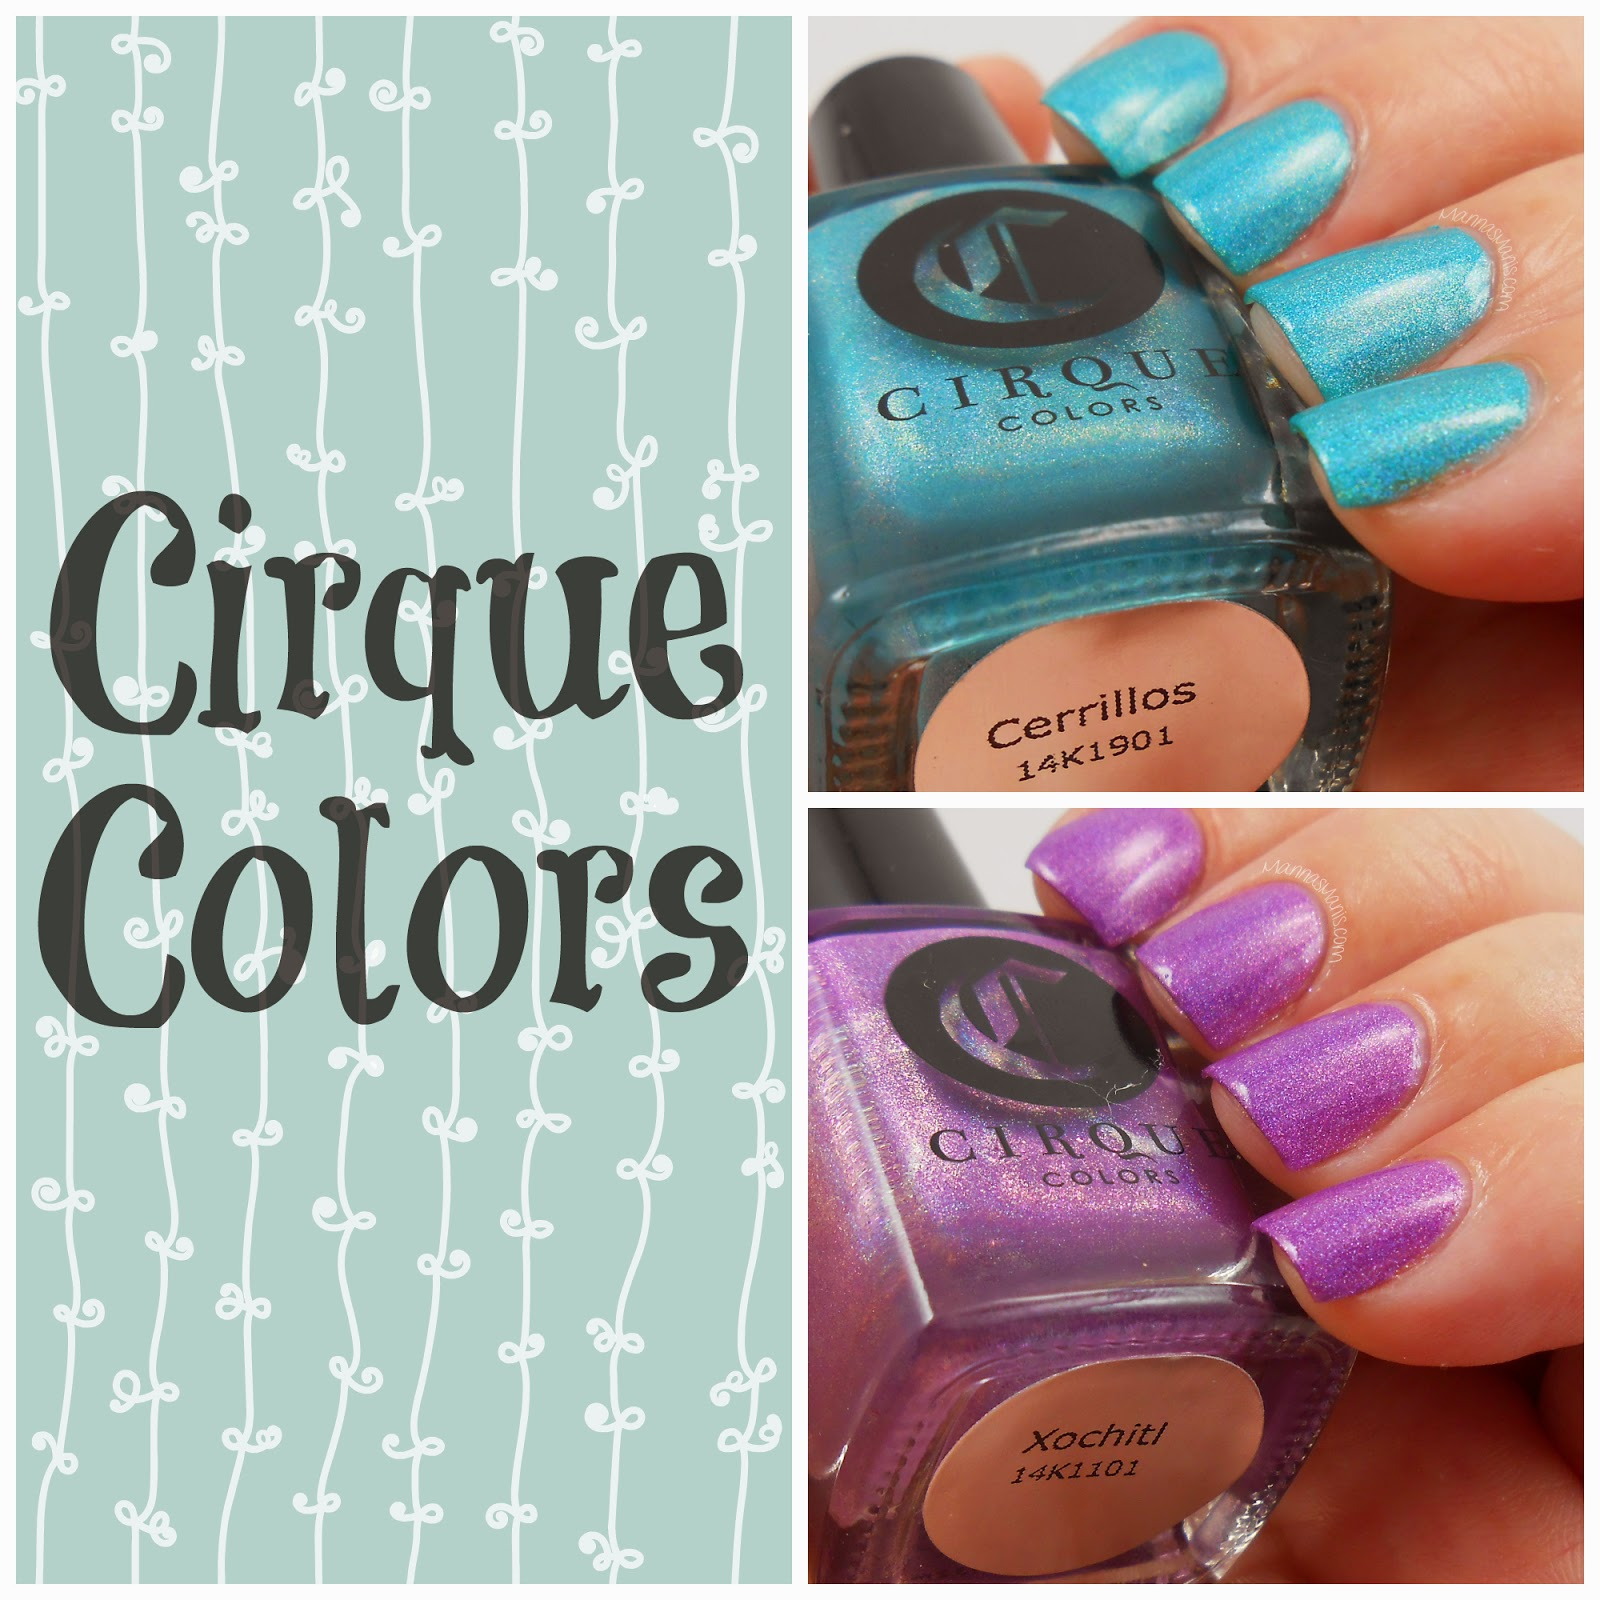 cirque colors